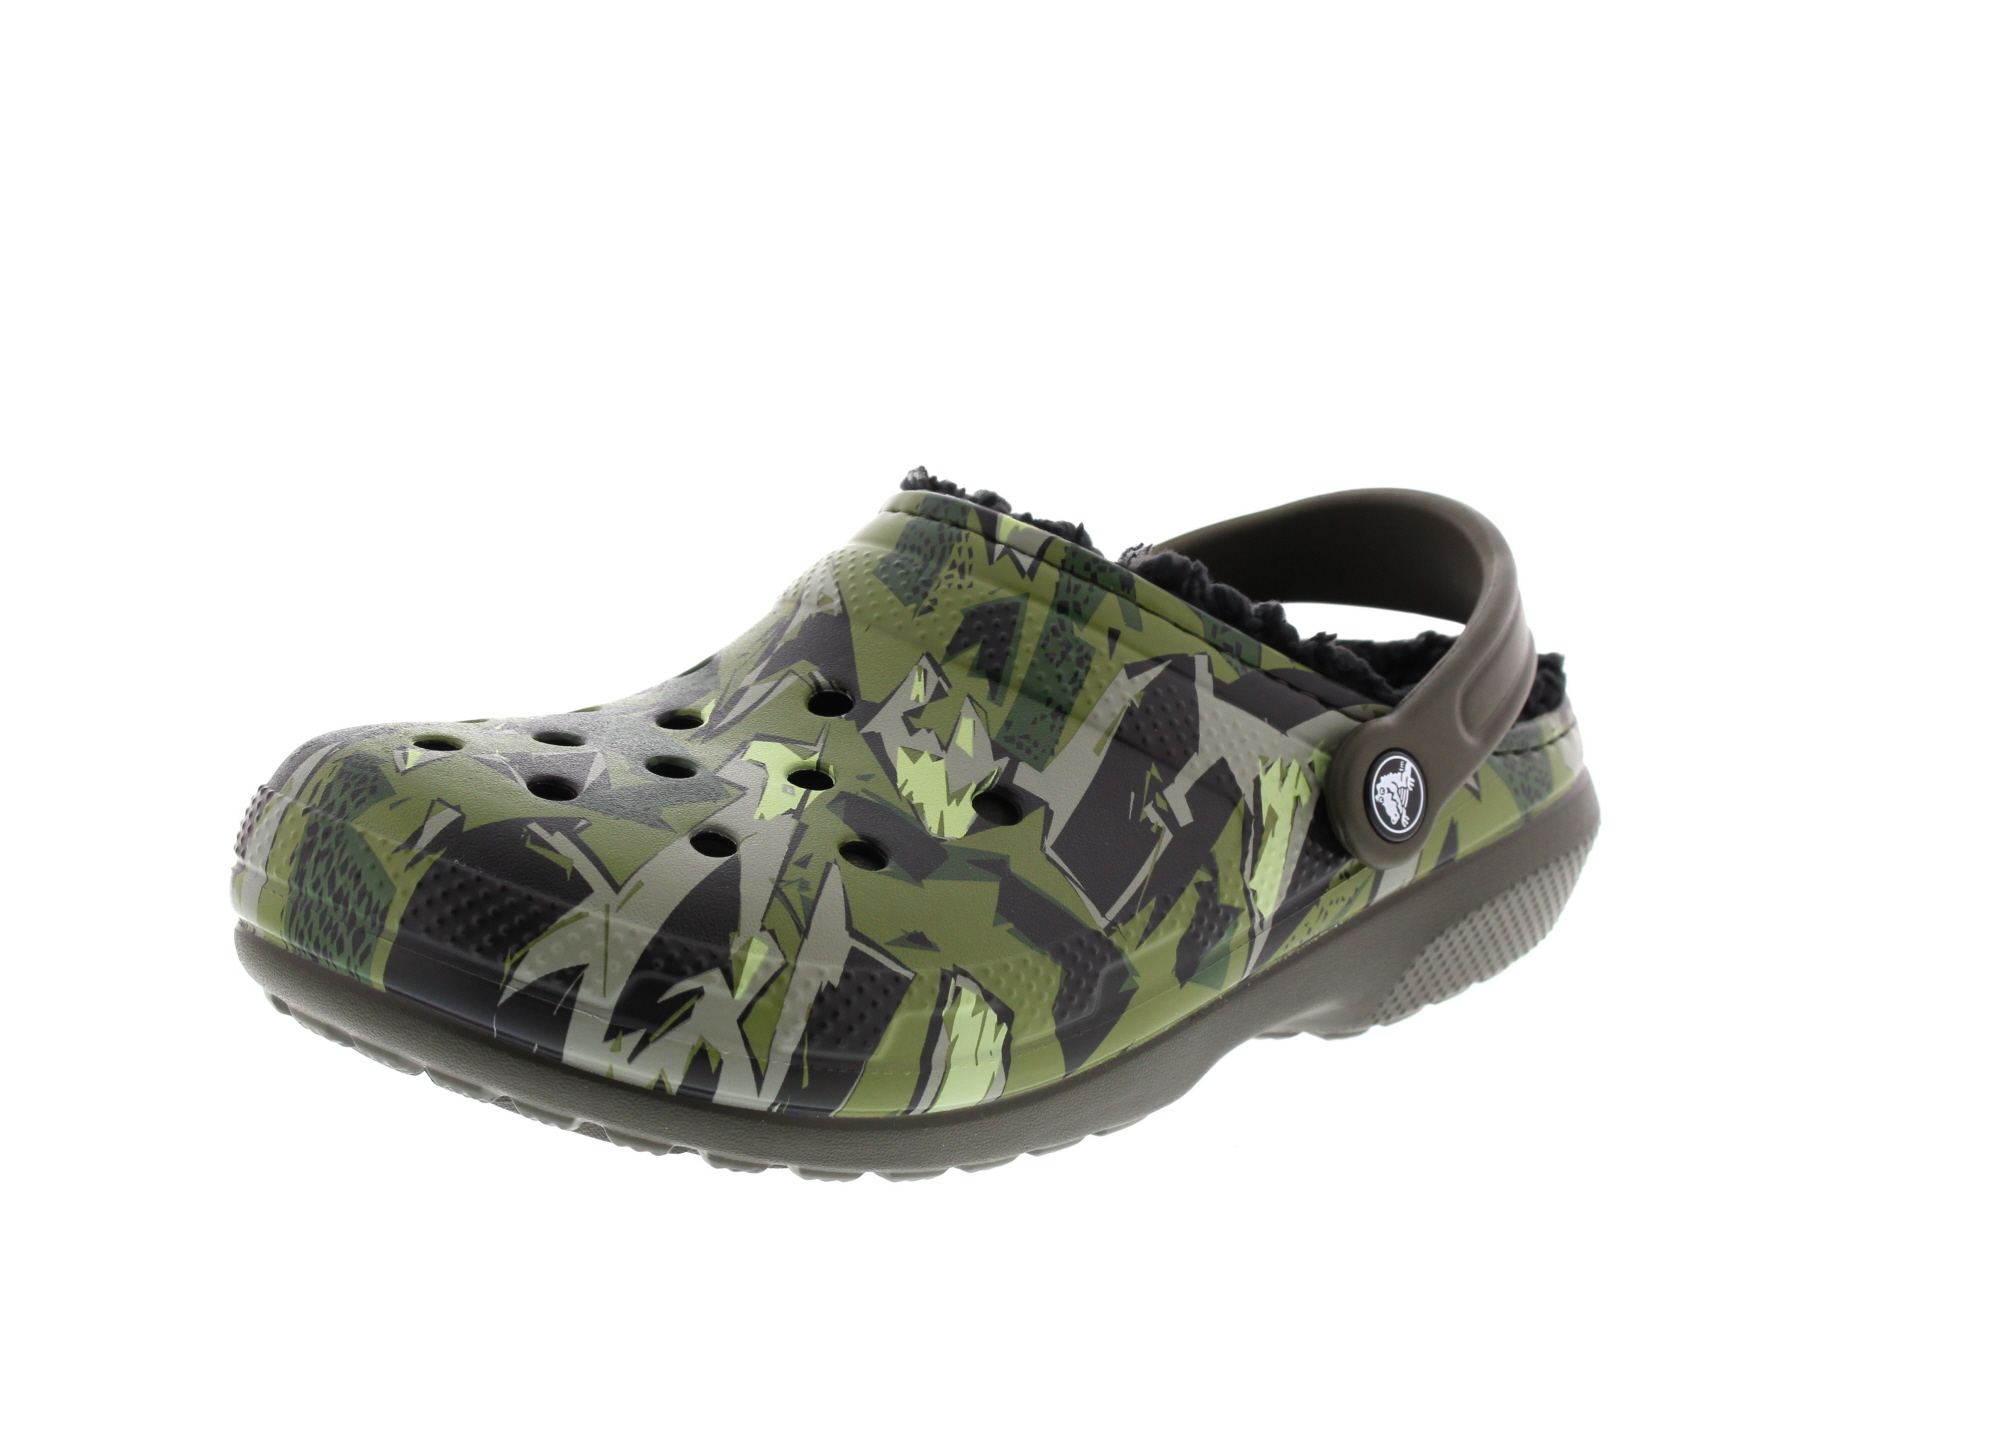 CROCS - CLASSIC LINED GRAPHIC - dark camo green black0-6566